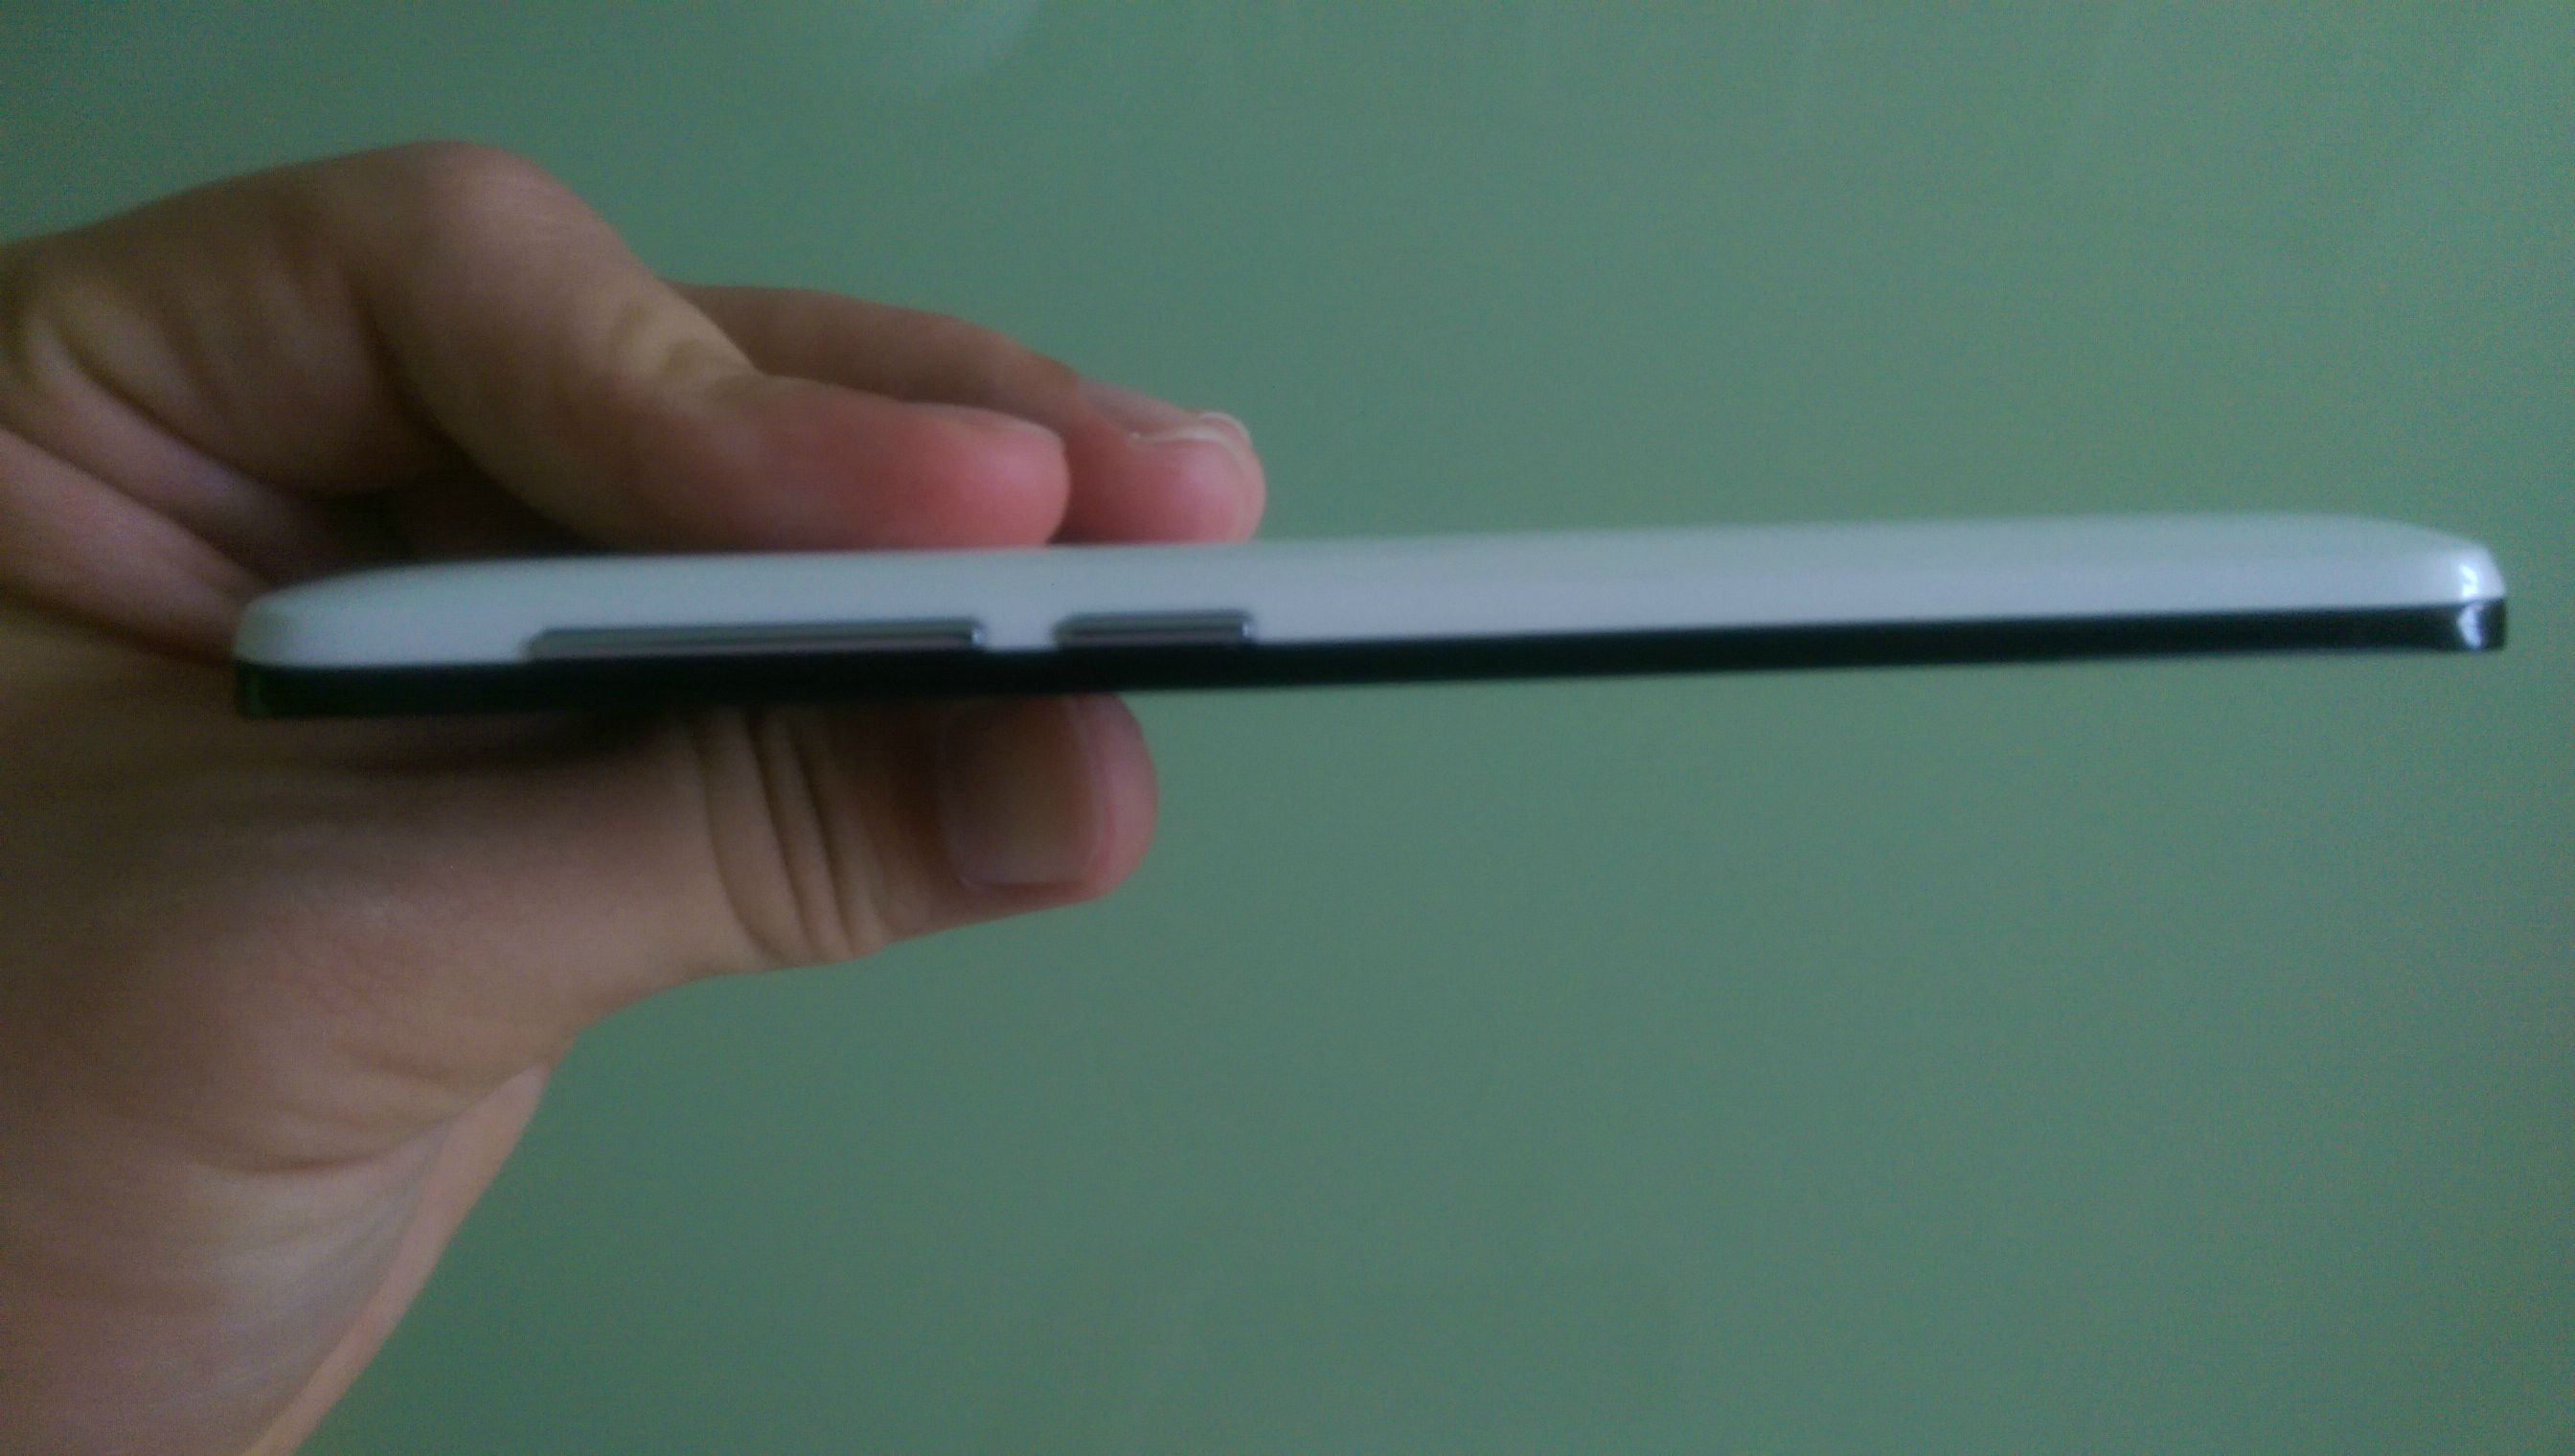 REVIEW] Hands-On With The Honor 3C Lite  Should You Get One?